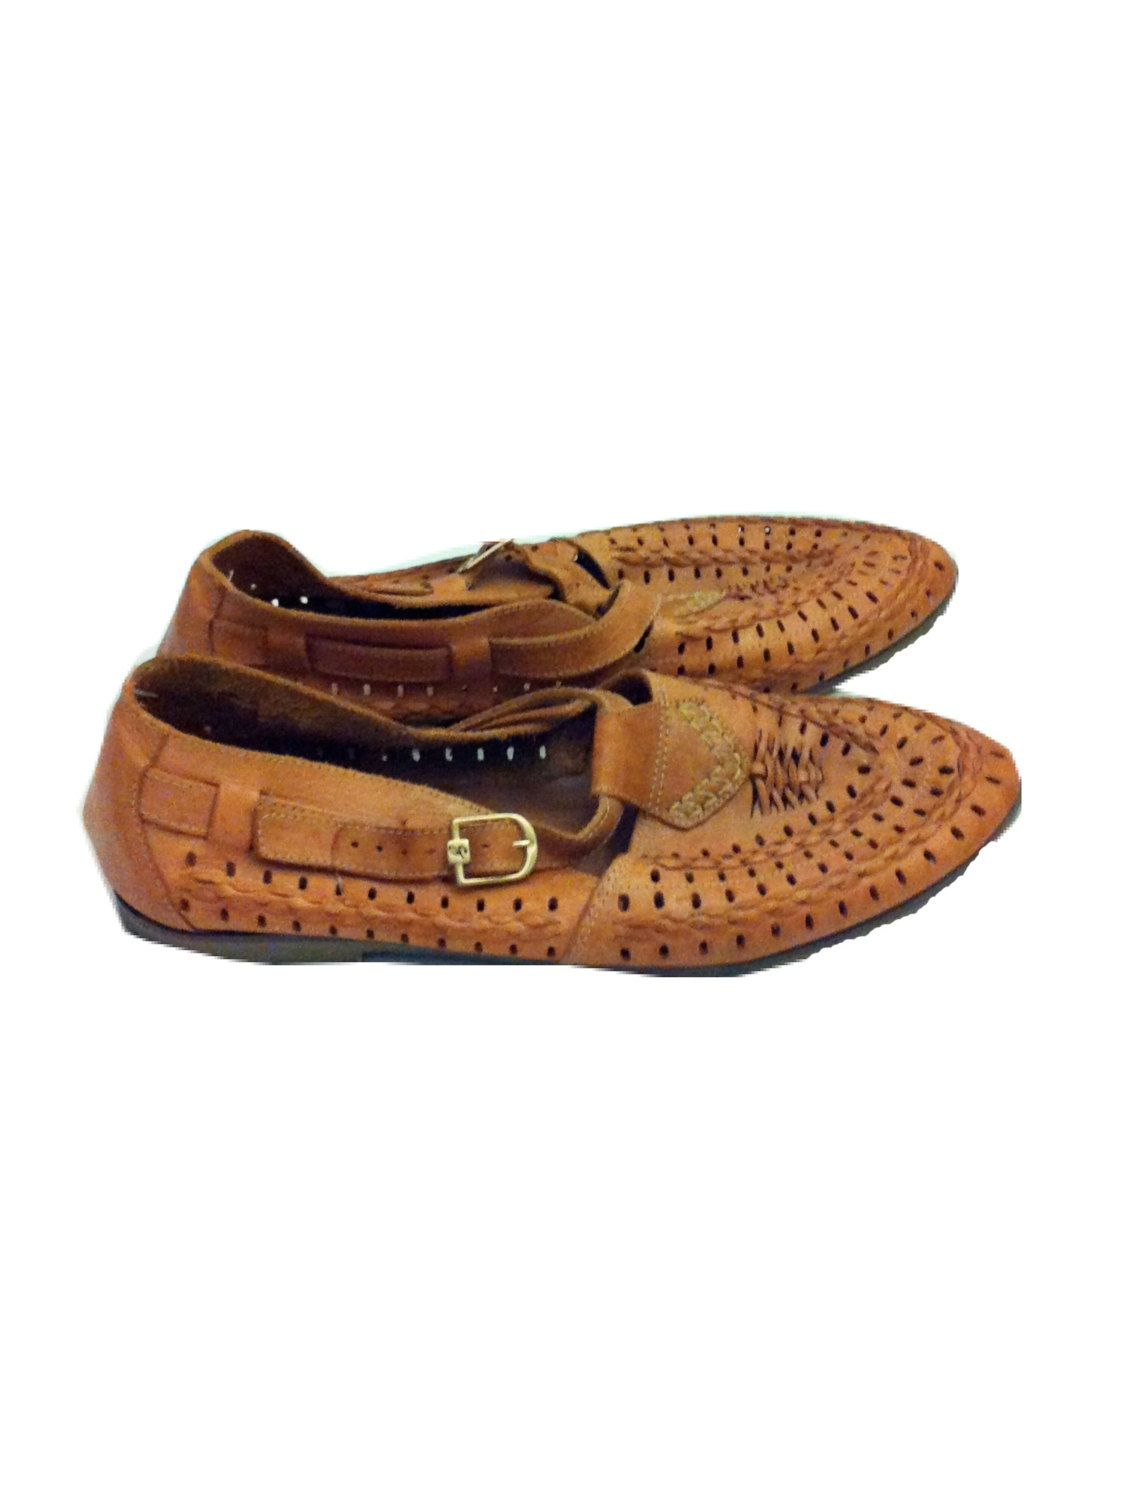 9dc317c9d1d Vintage 70s Navajo Moccasin Shoes - Woven Mocs - Leather- Grandpa - Tan -  Indian - Native - Buckle - Pointed Toe - Hipster - Mens Size 11